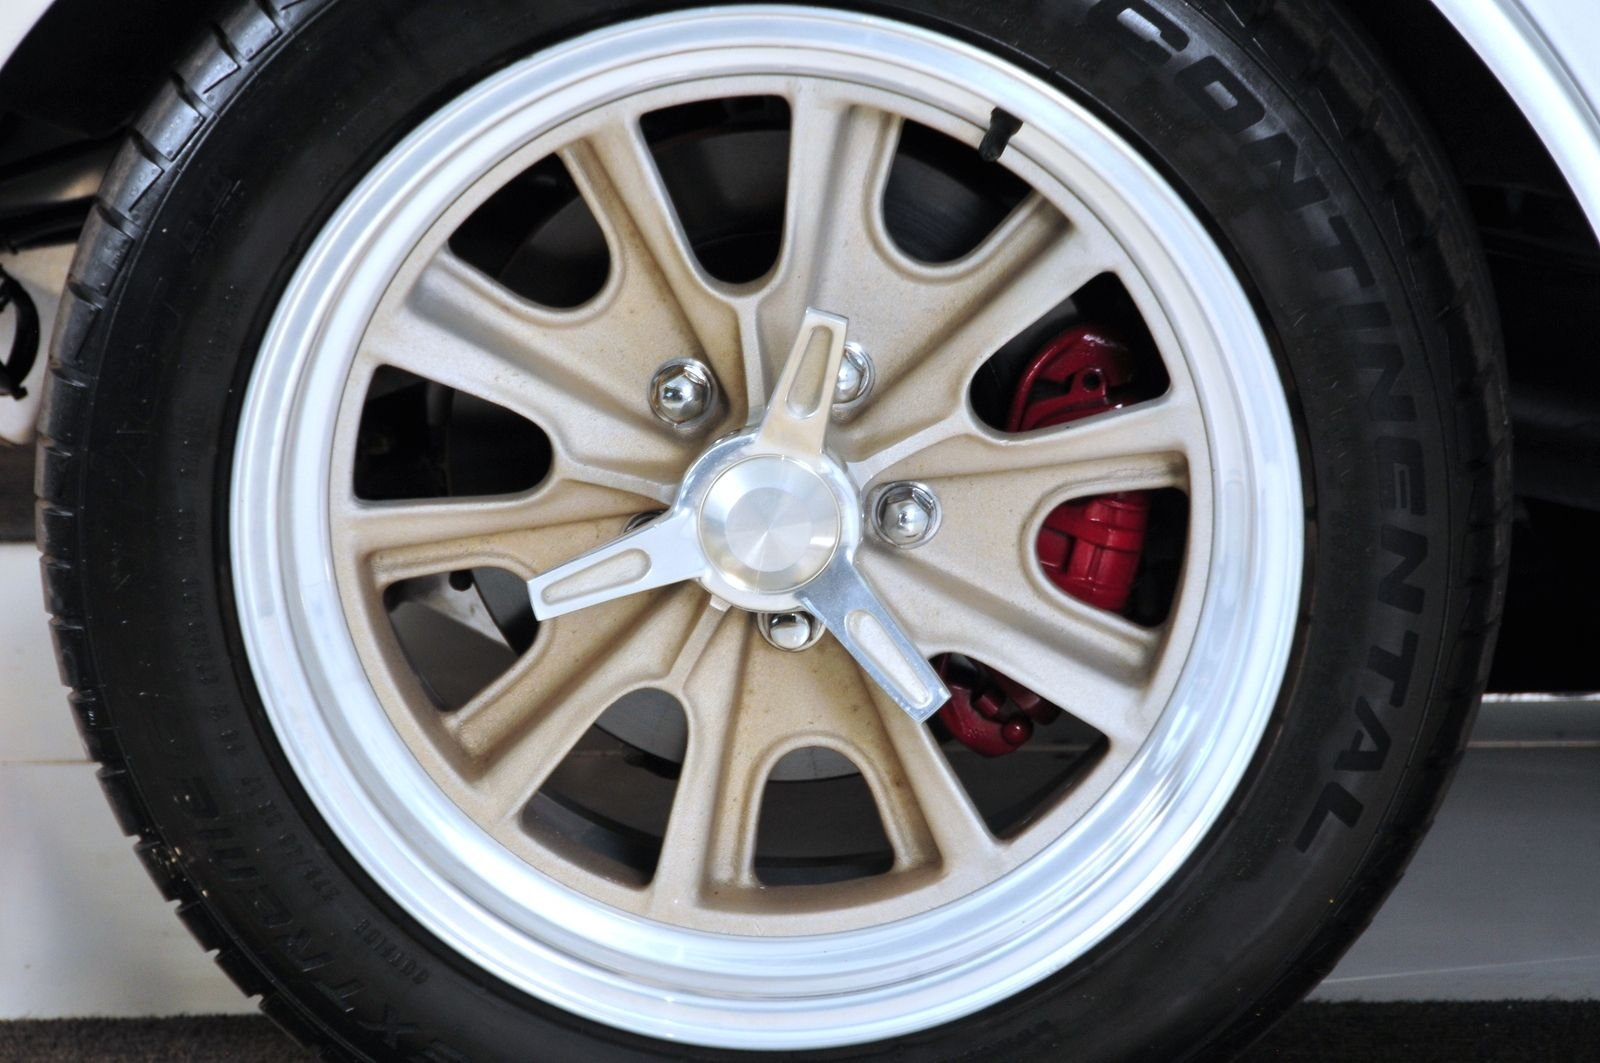 1963 Chevrolet Corvette Mongoose Motorsports Grand Sport Fast Five wheel